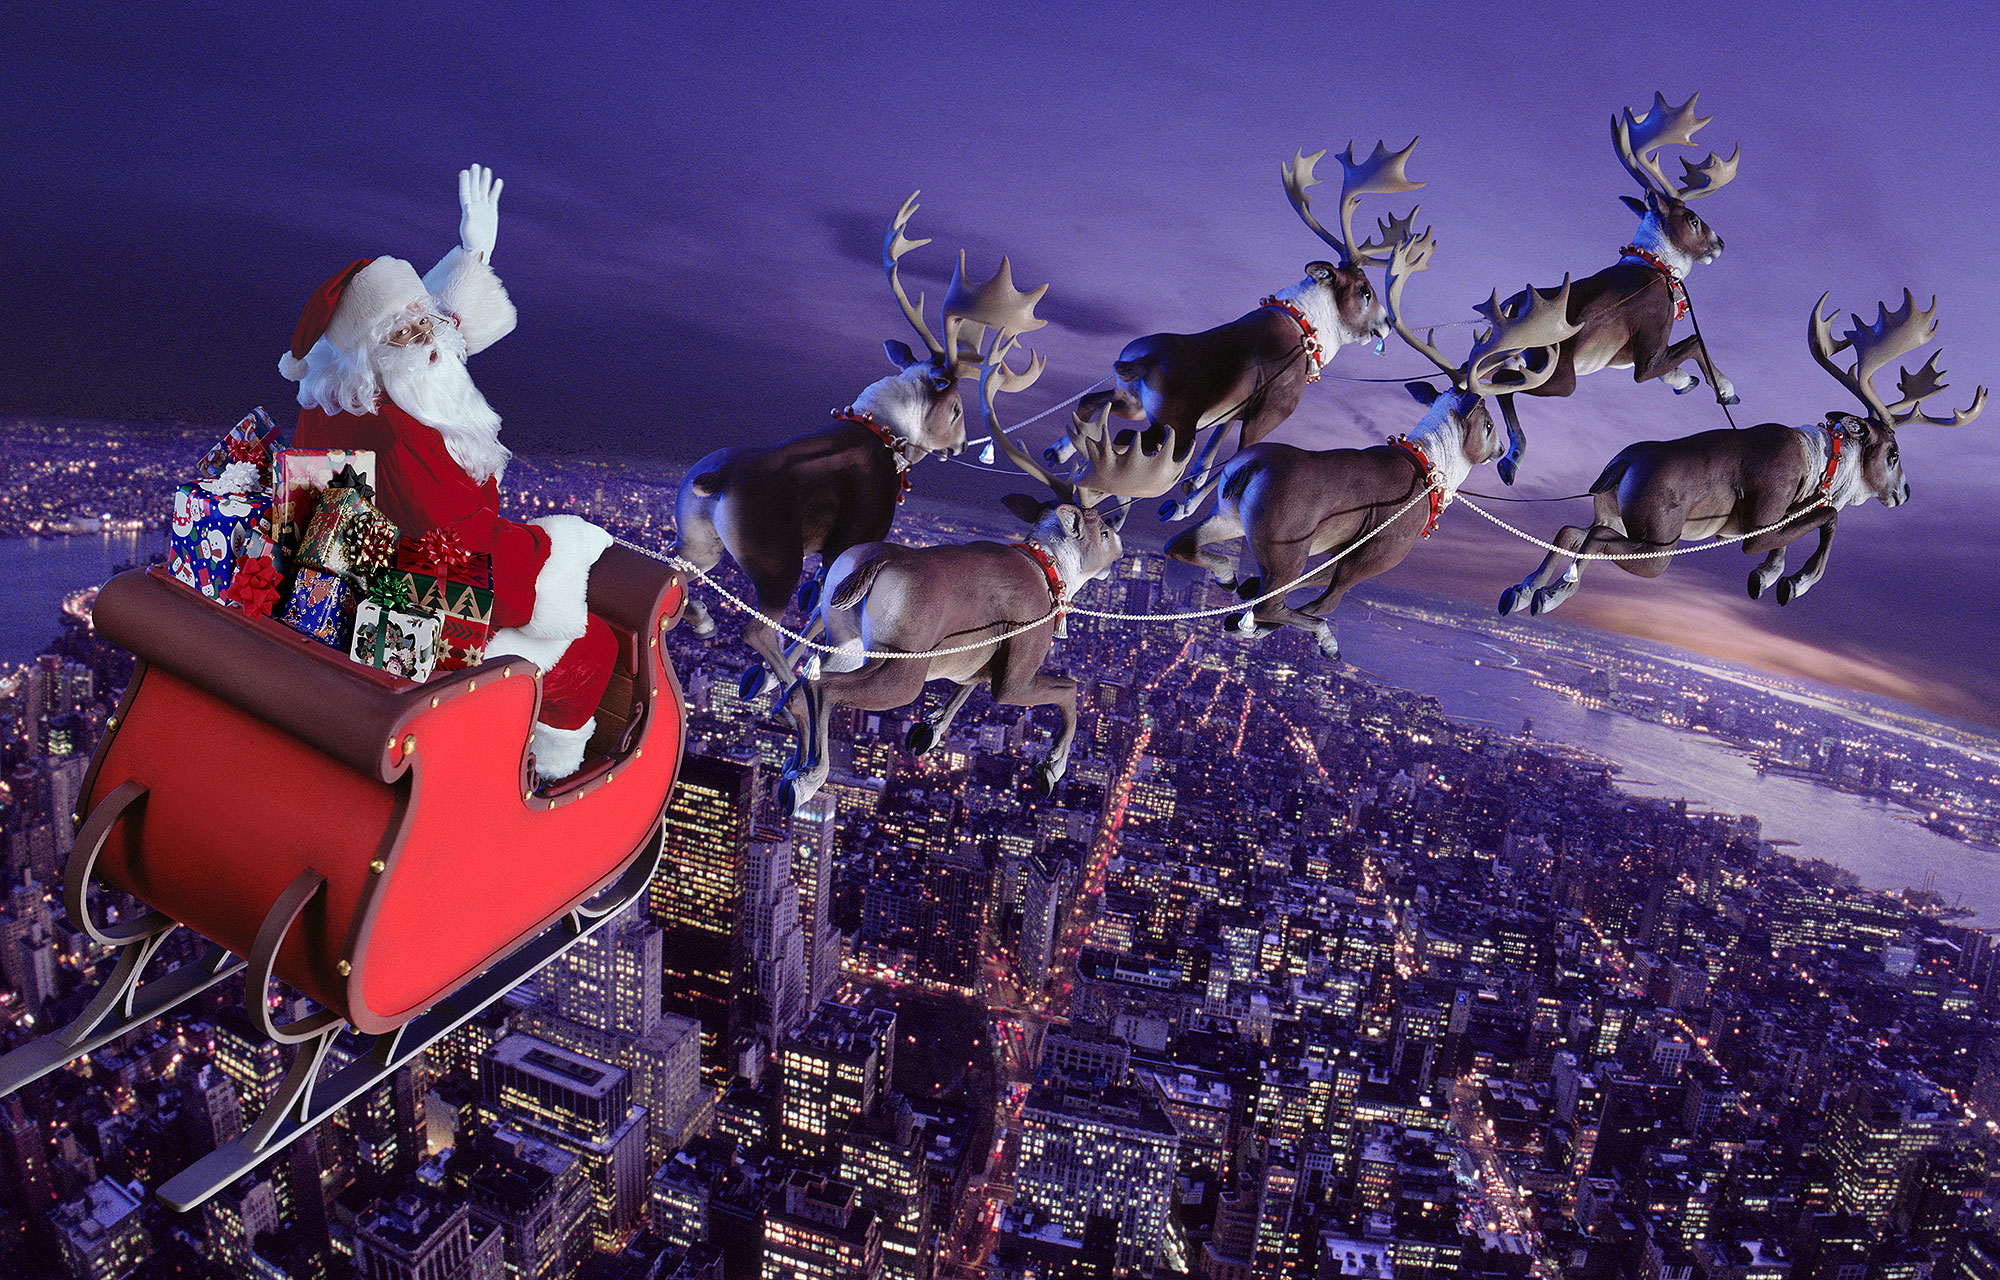 santa claus riding sleigh holding rope of reindeer rudolph teams background